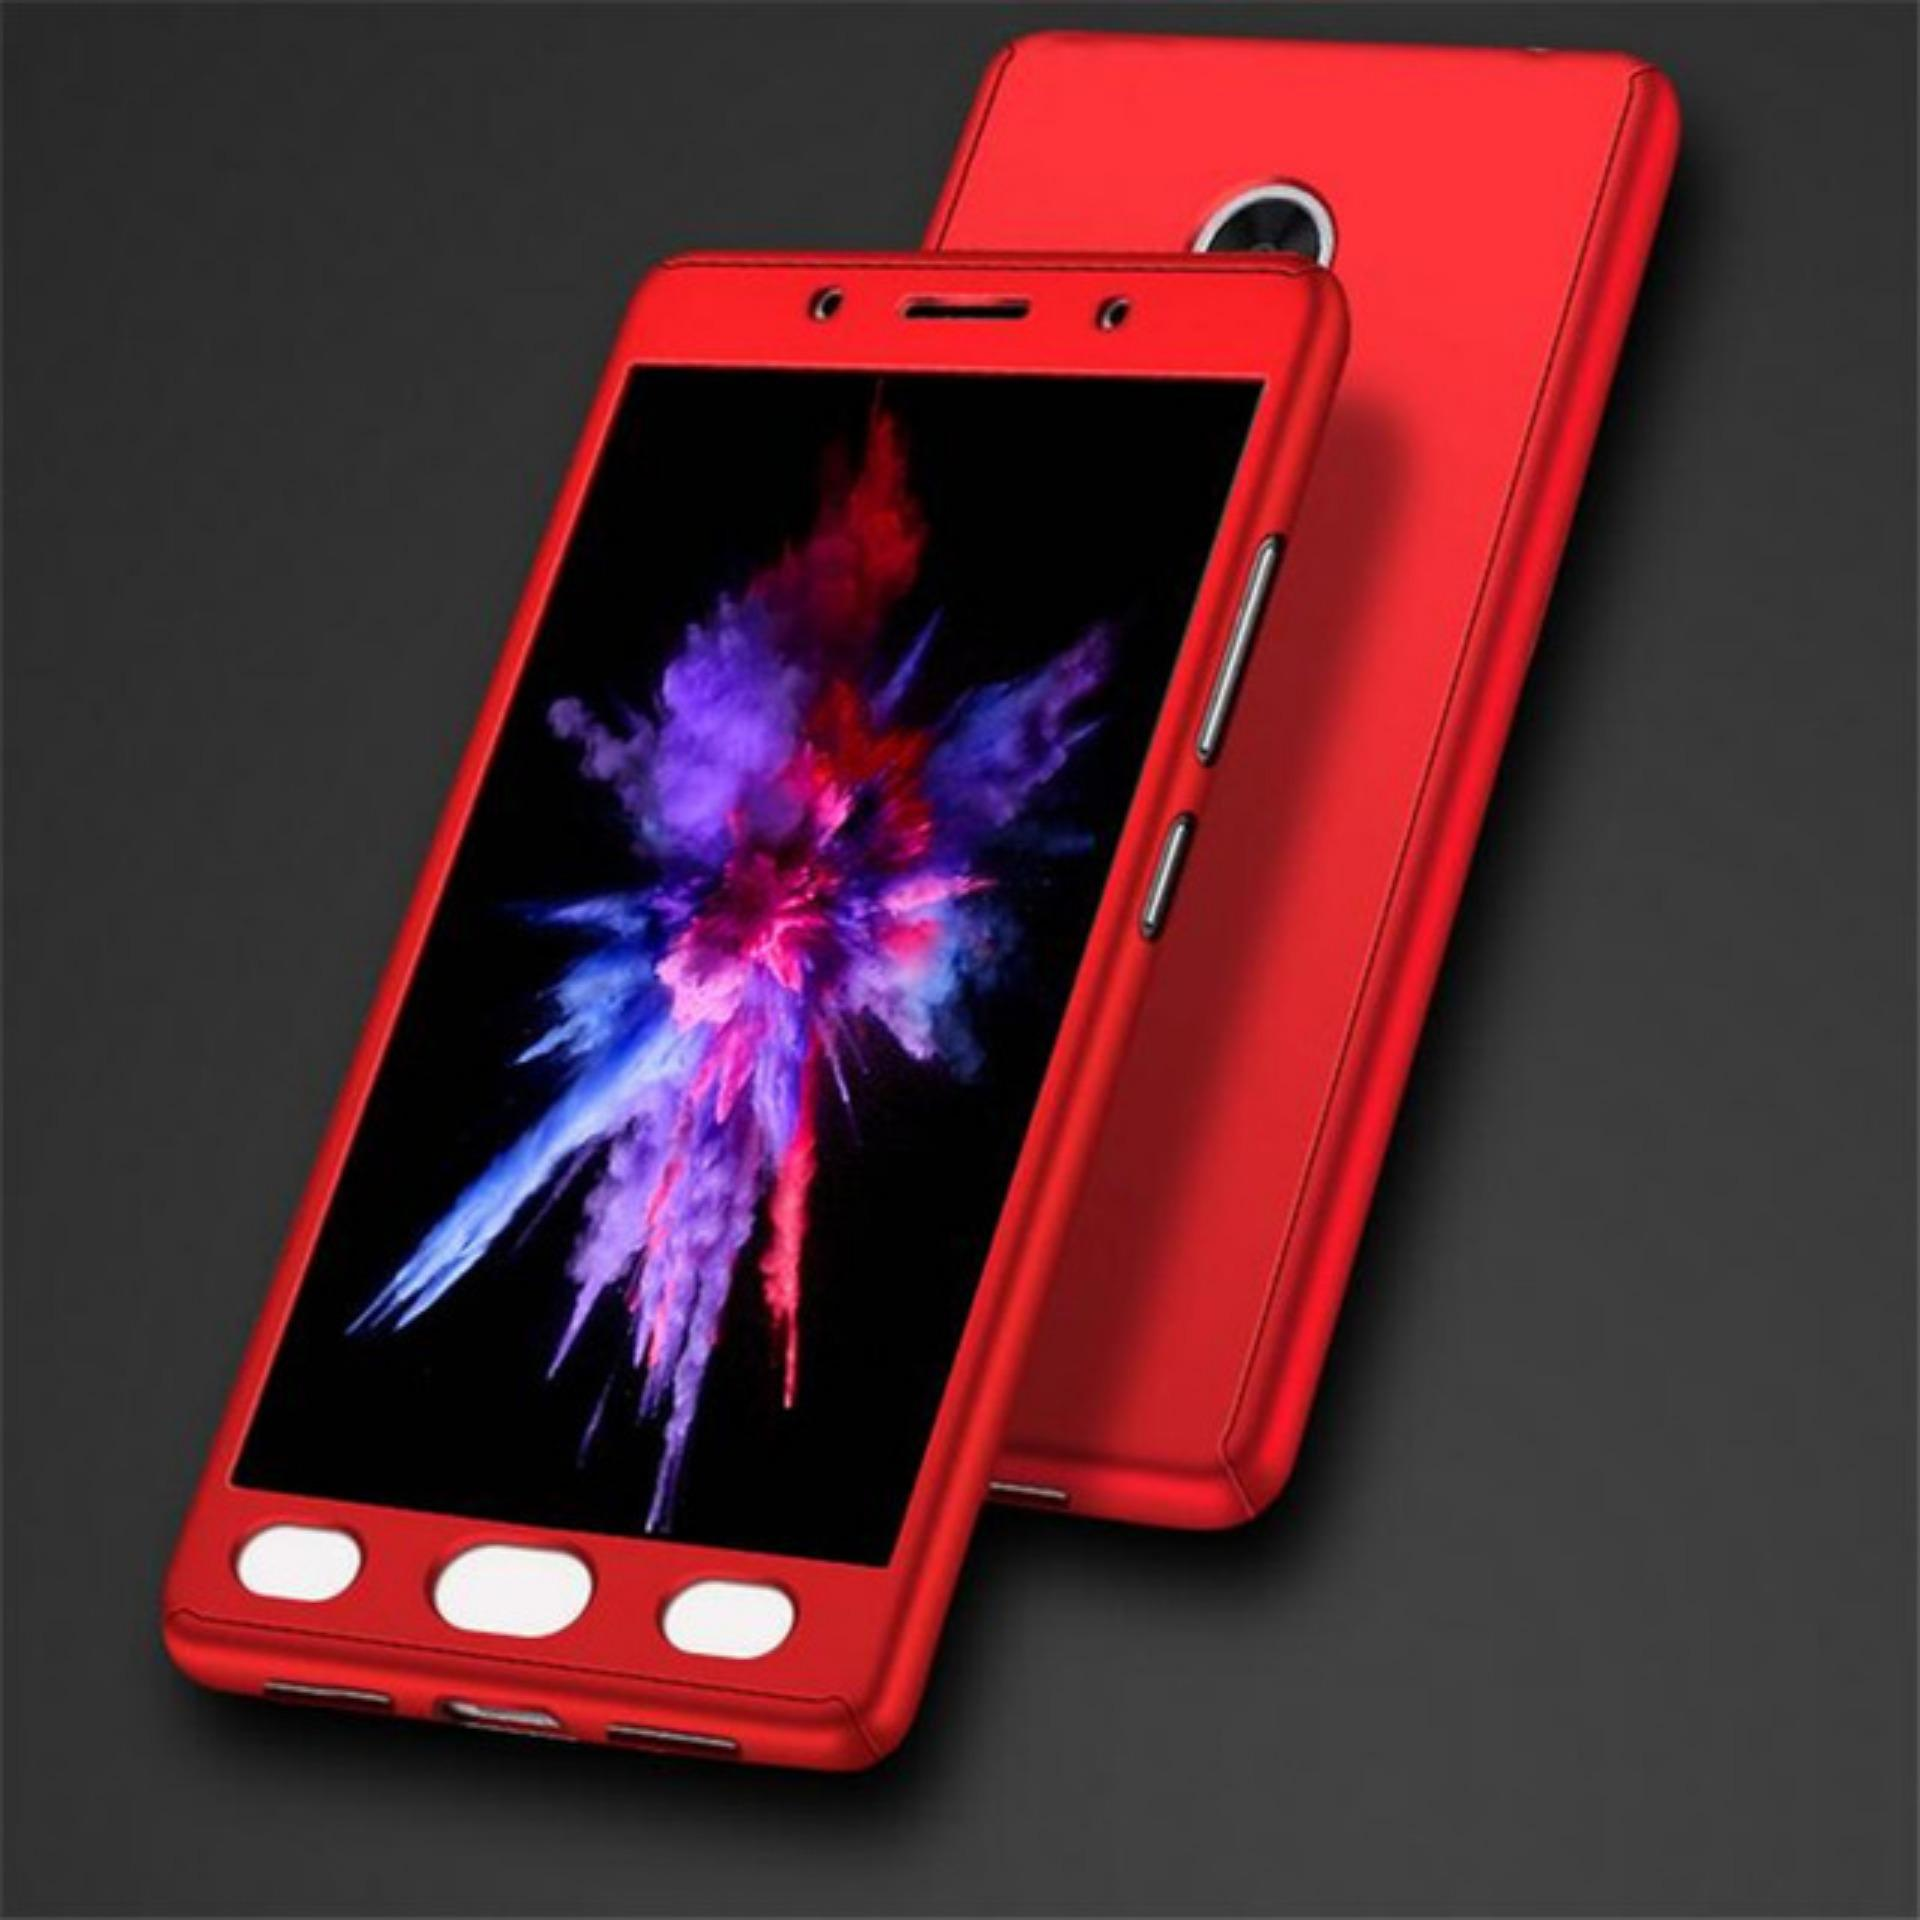 Viking Premium 360 Degree Full Protection Case for Xiaomi Redmi Note 4X / 4X Snapdragon - FREE Tempered Glass